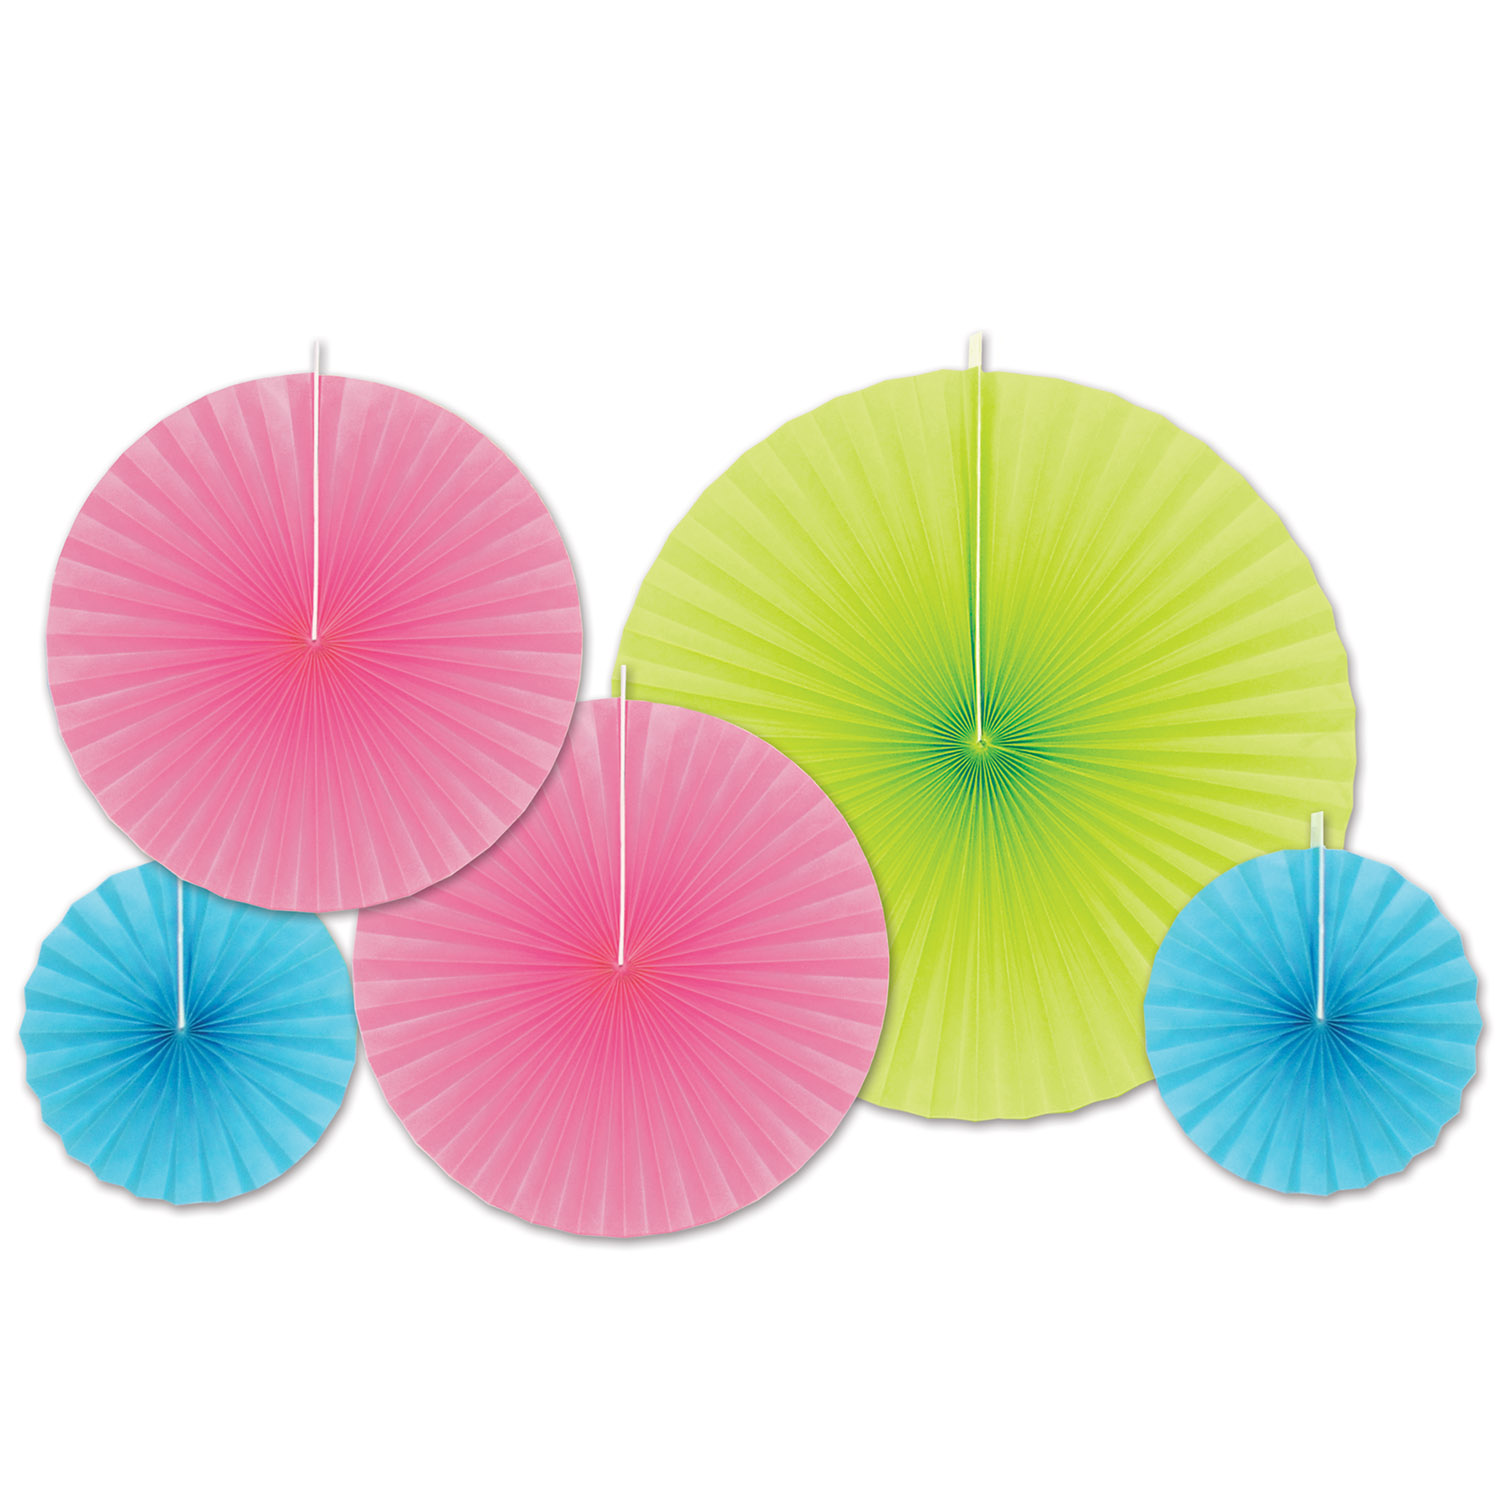 Accordion Paper Fans (Pack of 60) Accordion paper fans, pink, lime green, turquoise, new years eve, neon, decoration, wholesale, inexpensive, bulk